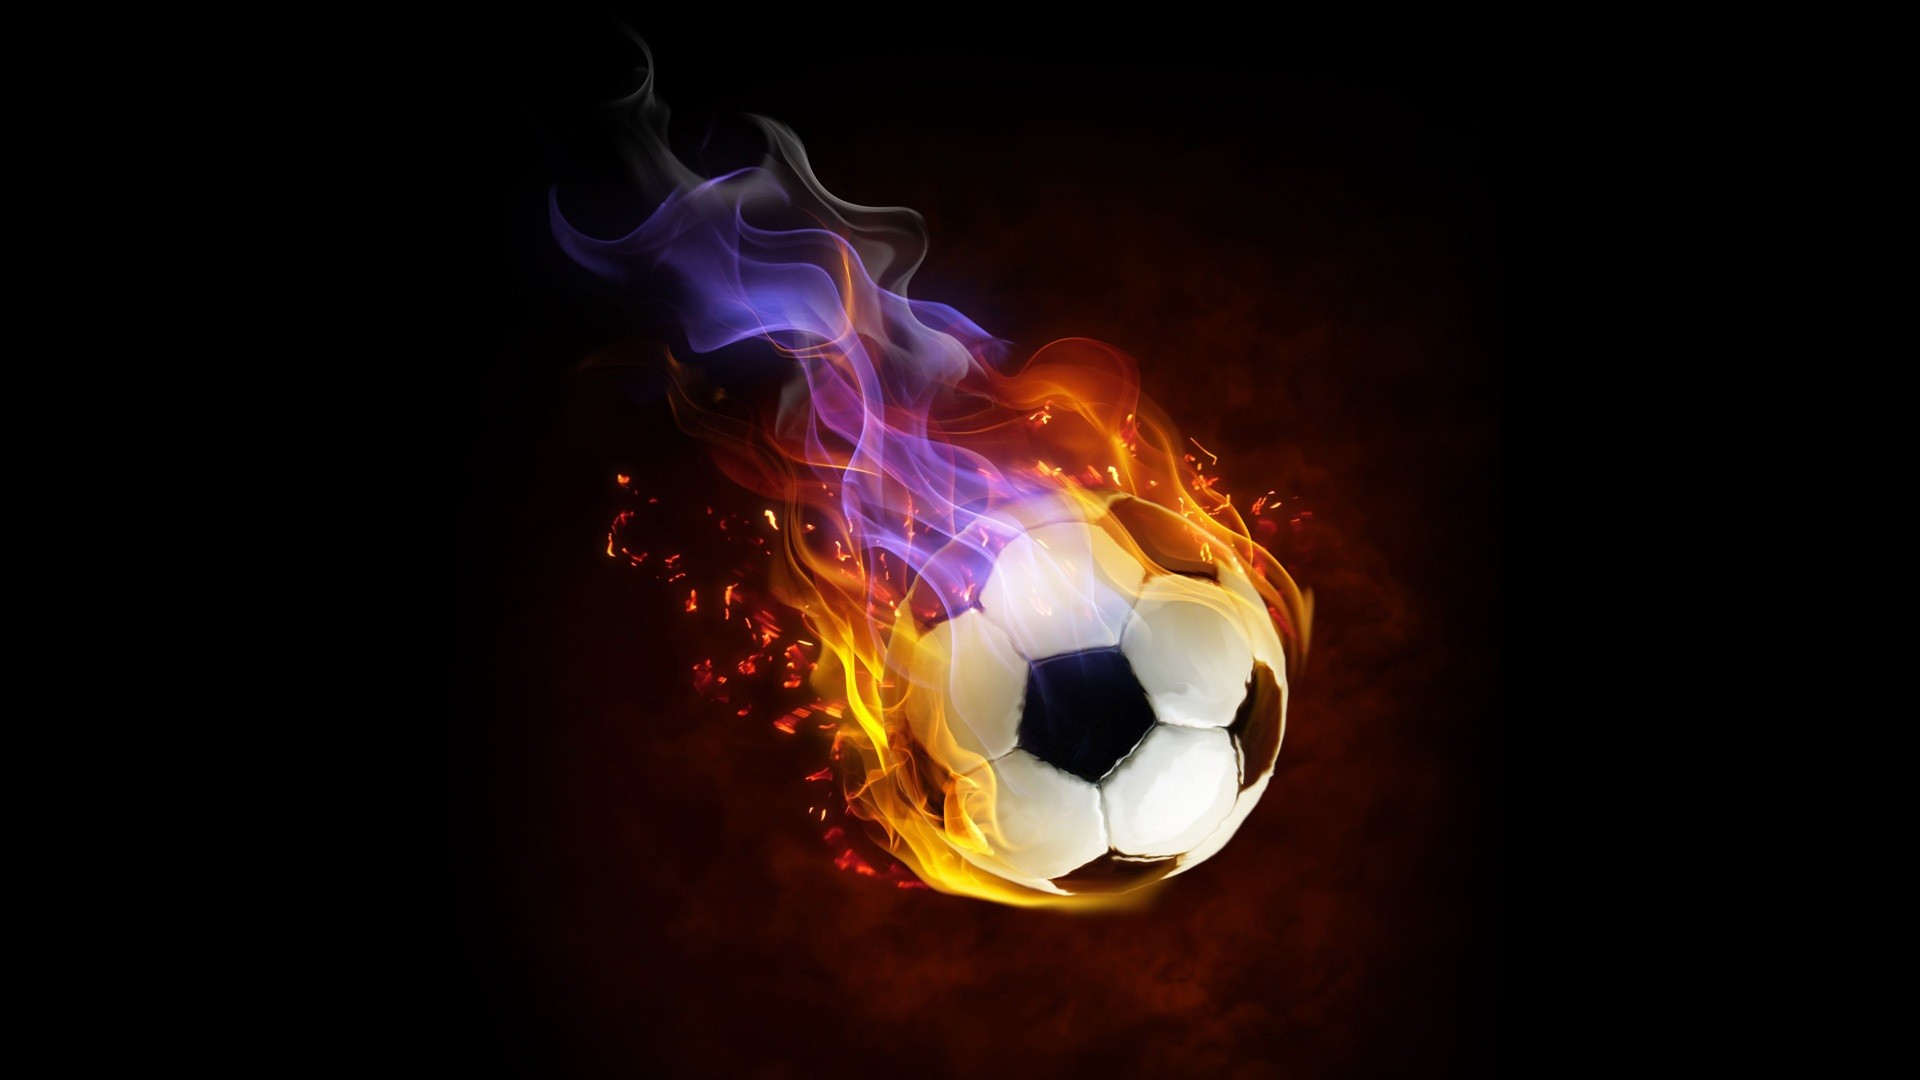 1920x1080 Cool Flaming Soccer Ball Wallpaper Soccer/football